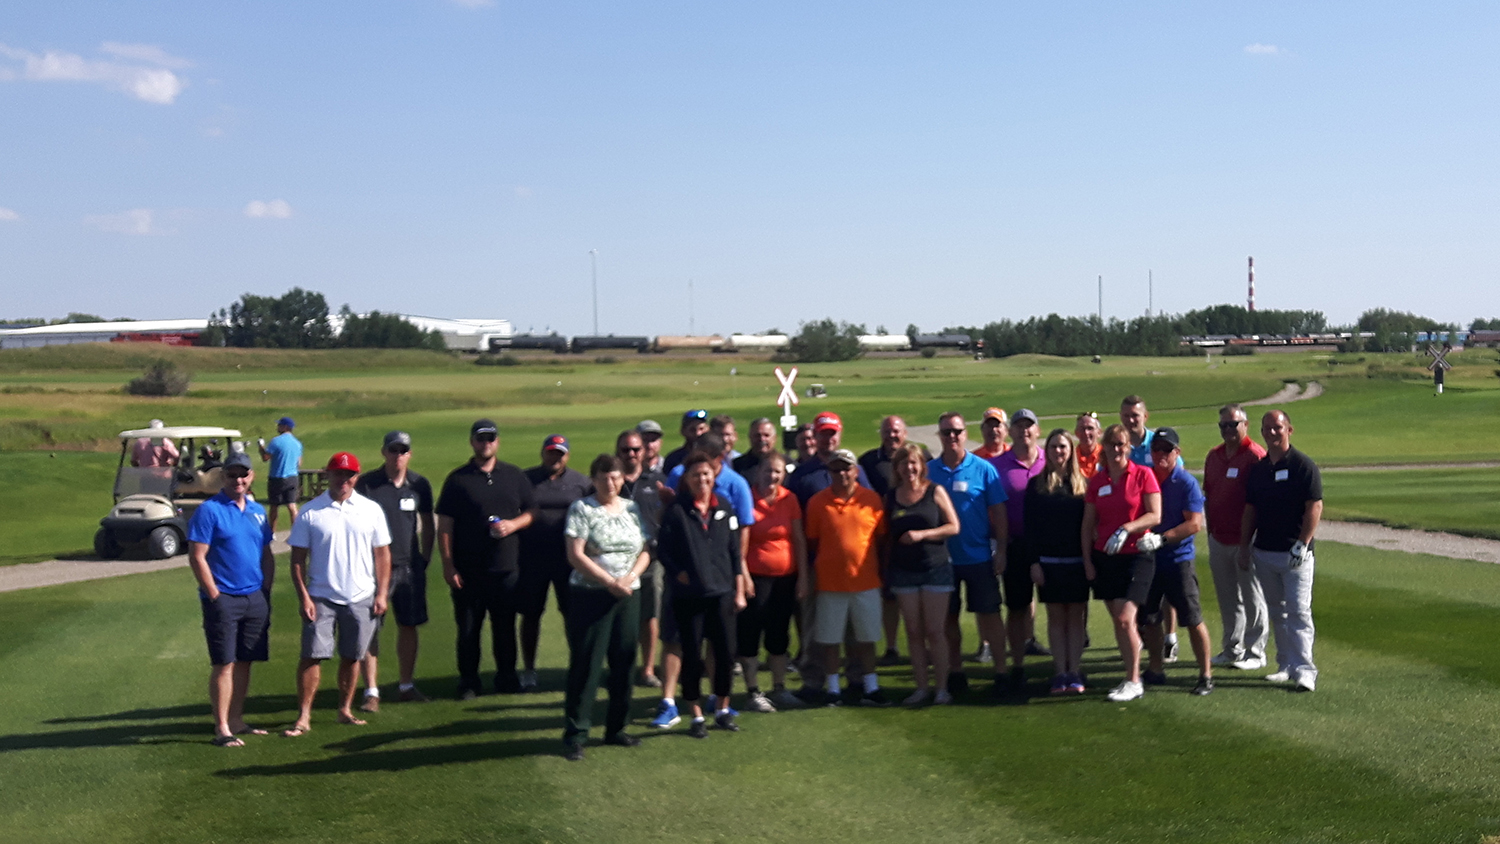 2017 Startec's Employee Golf Event – 5th Annual John Anton Memorial